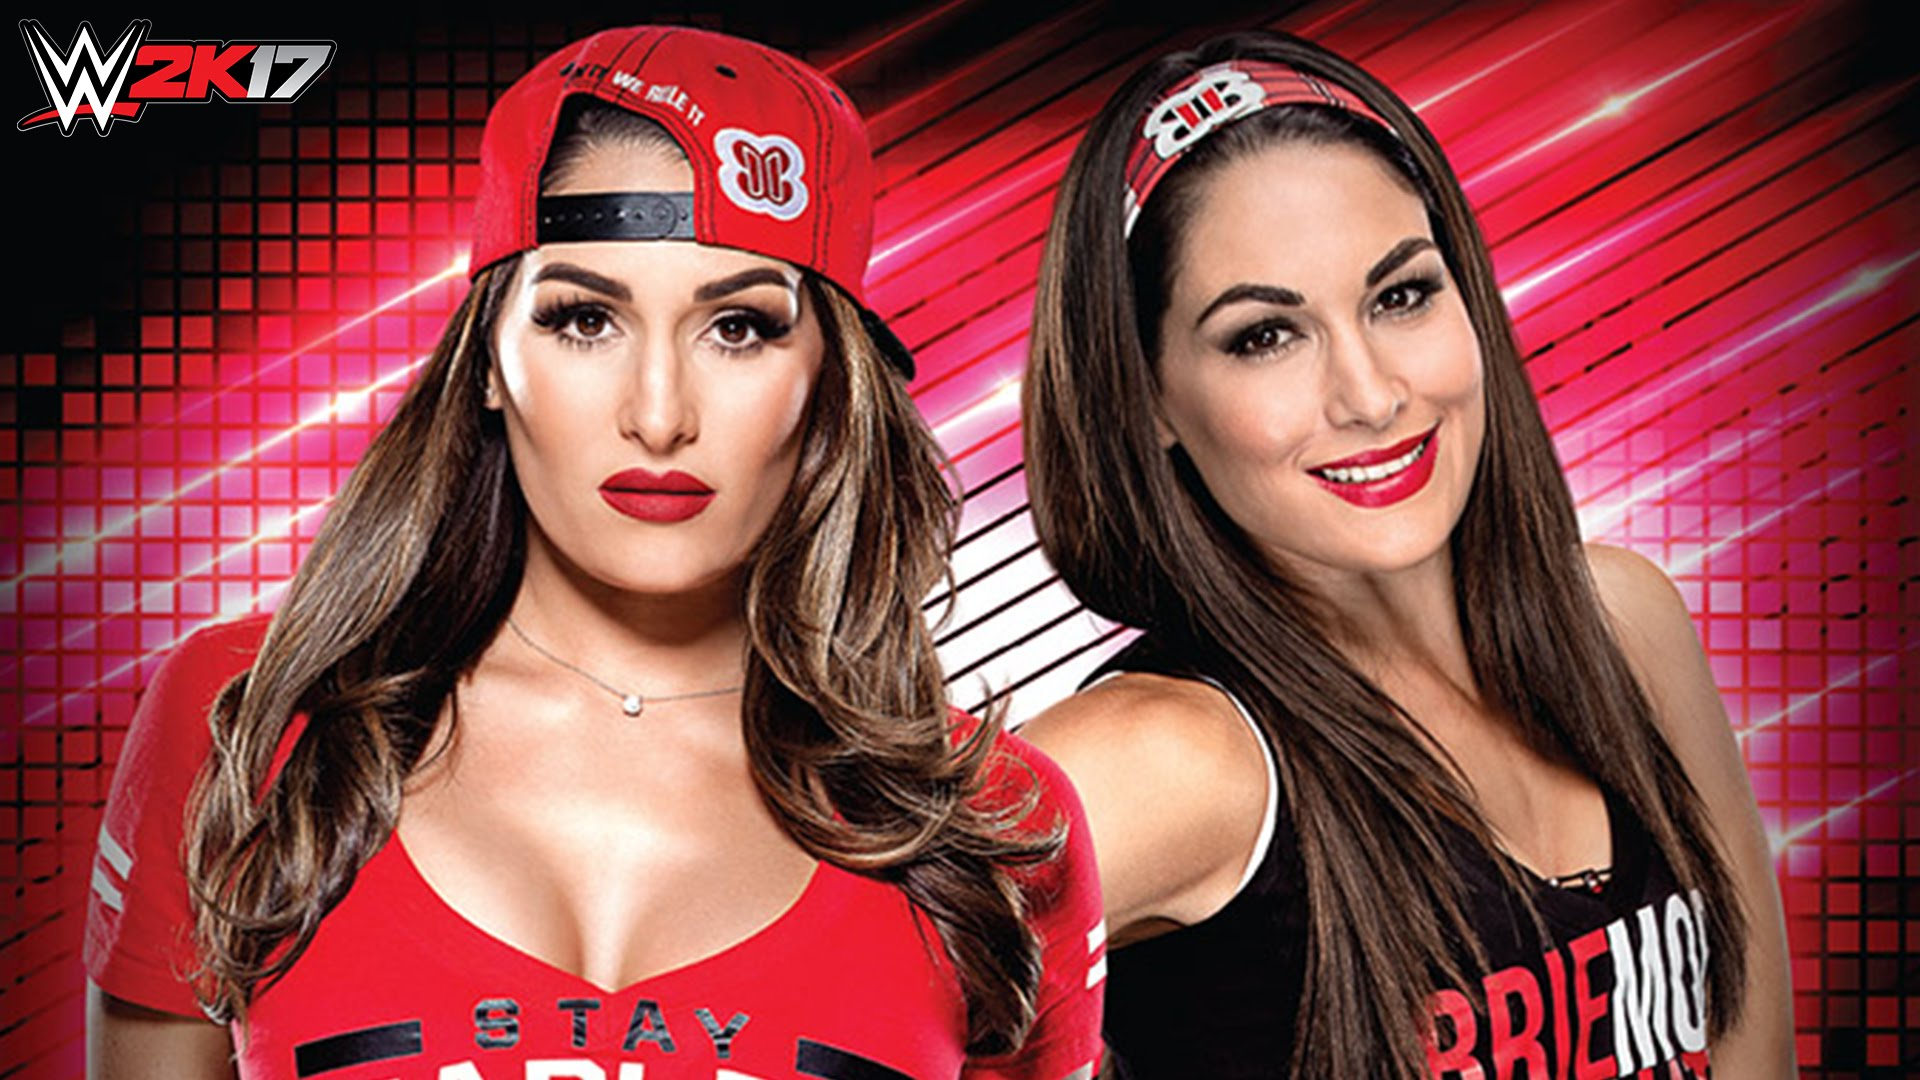 The Bella Twins Wallpapers and Background Images   stmednet 1920x1080